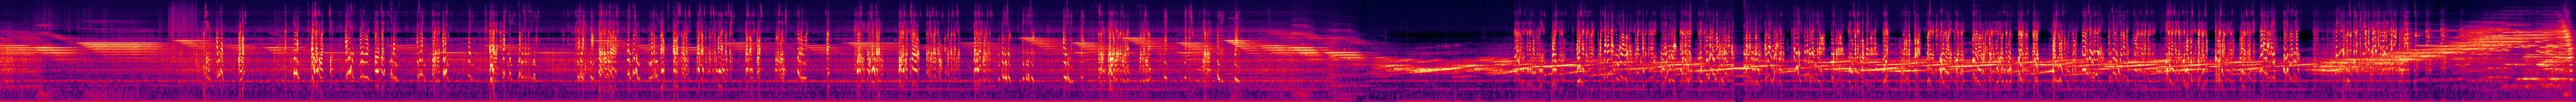 The Naked Sun - 16. Epilogue - Spectrogram.jpg